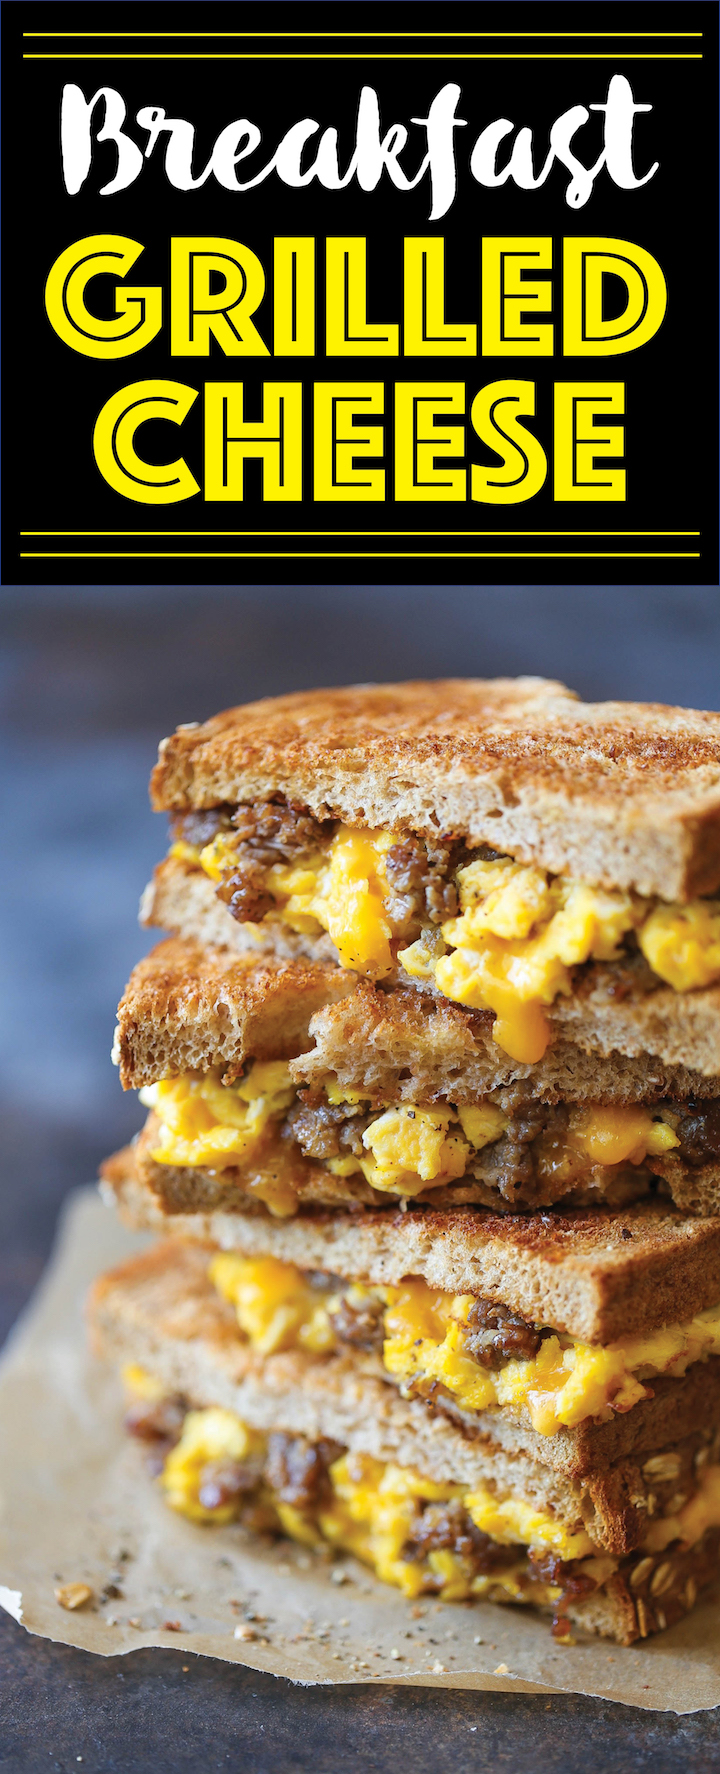 Breakfast Grilled Cheese - The PERFECT excuse to have grilled cheese ...